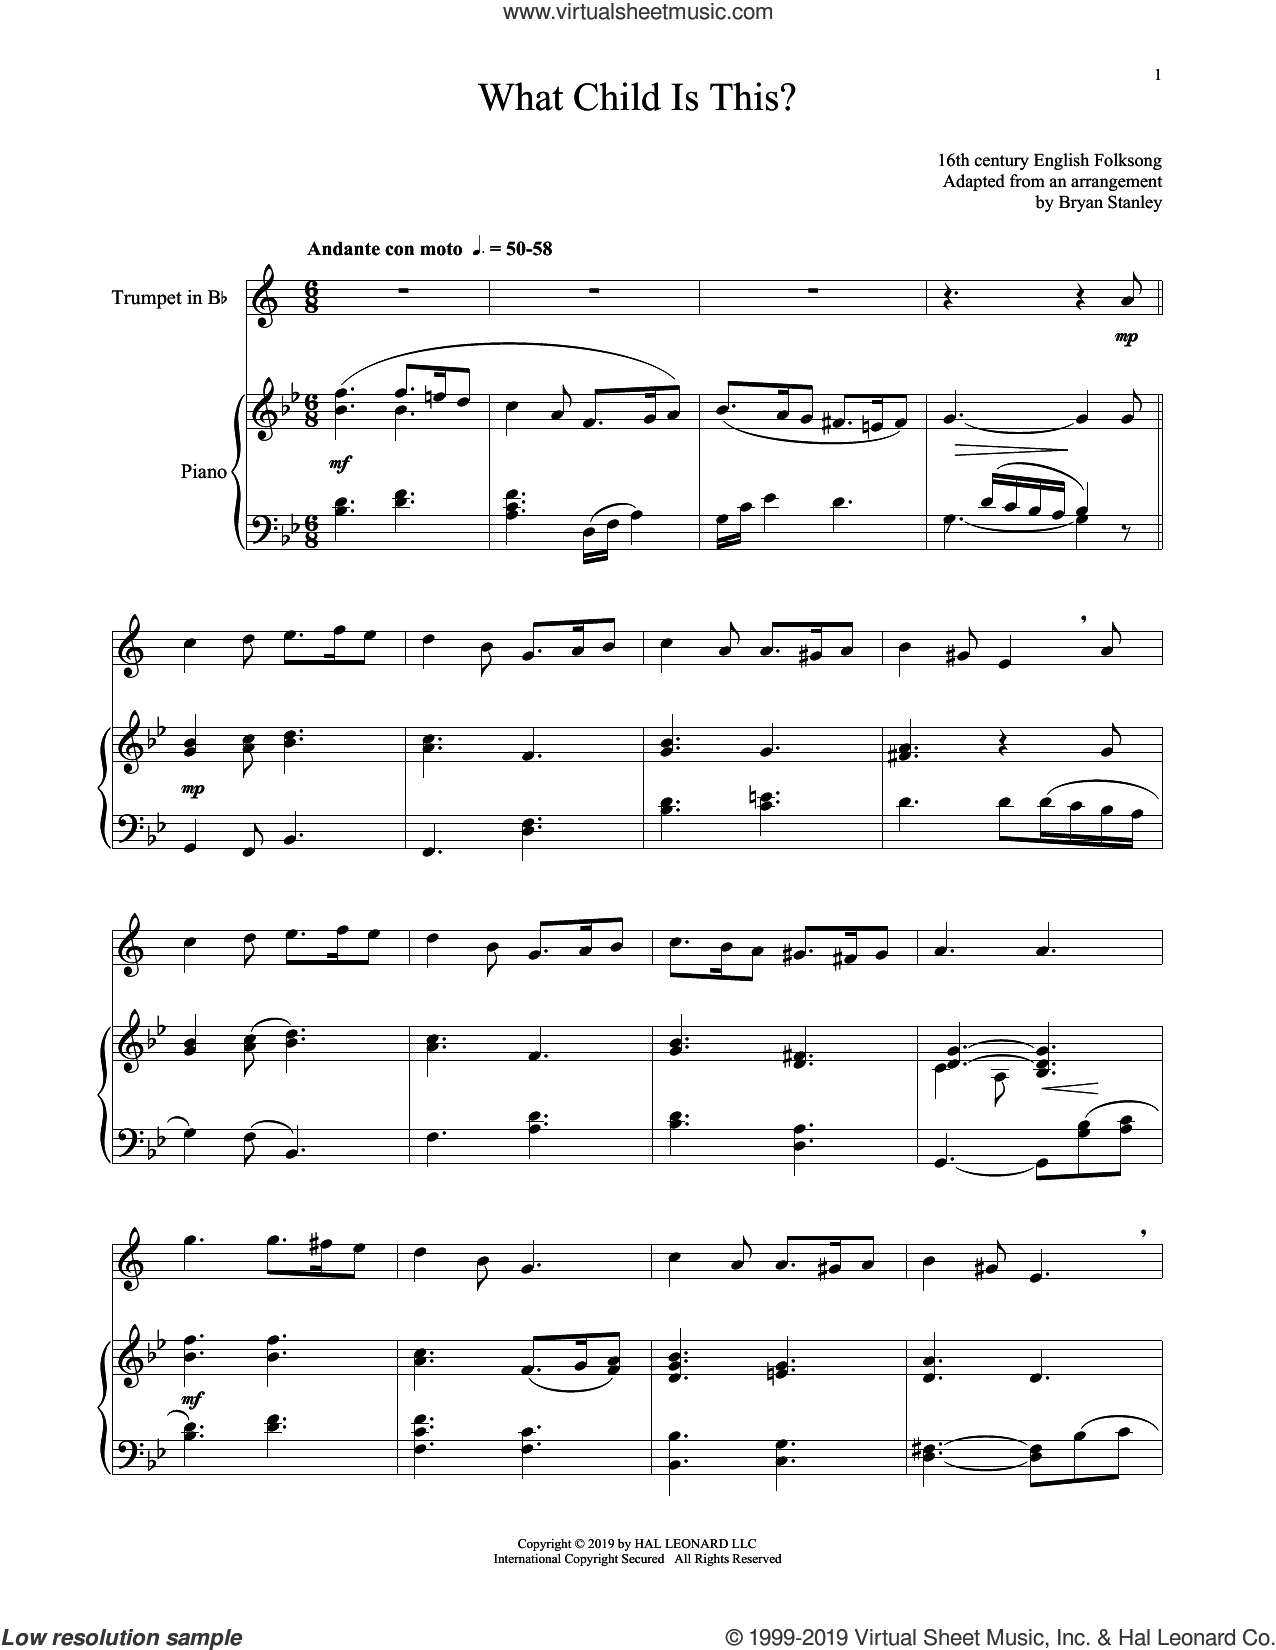 What Child Is This? sheet music for trumpet and piano by William Chatterton Dix and Miscellaneous, intermediate skill level